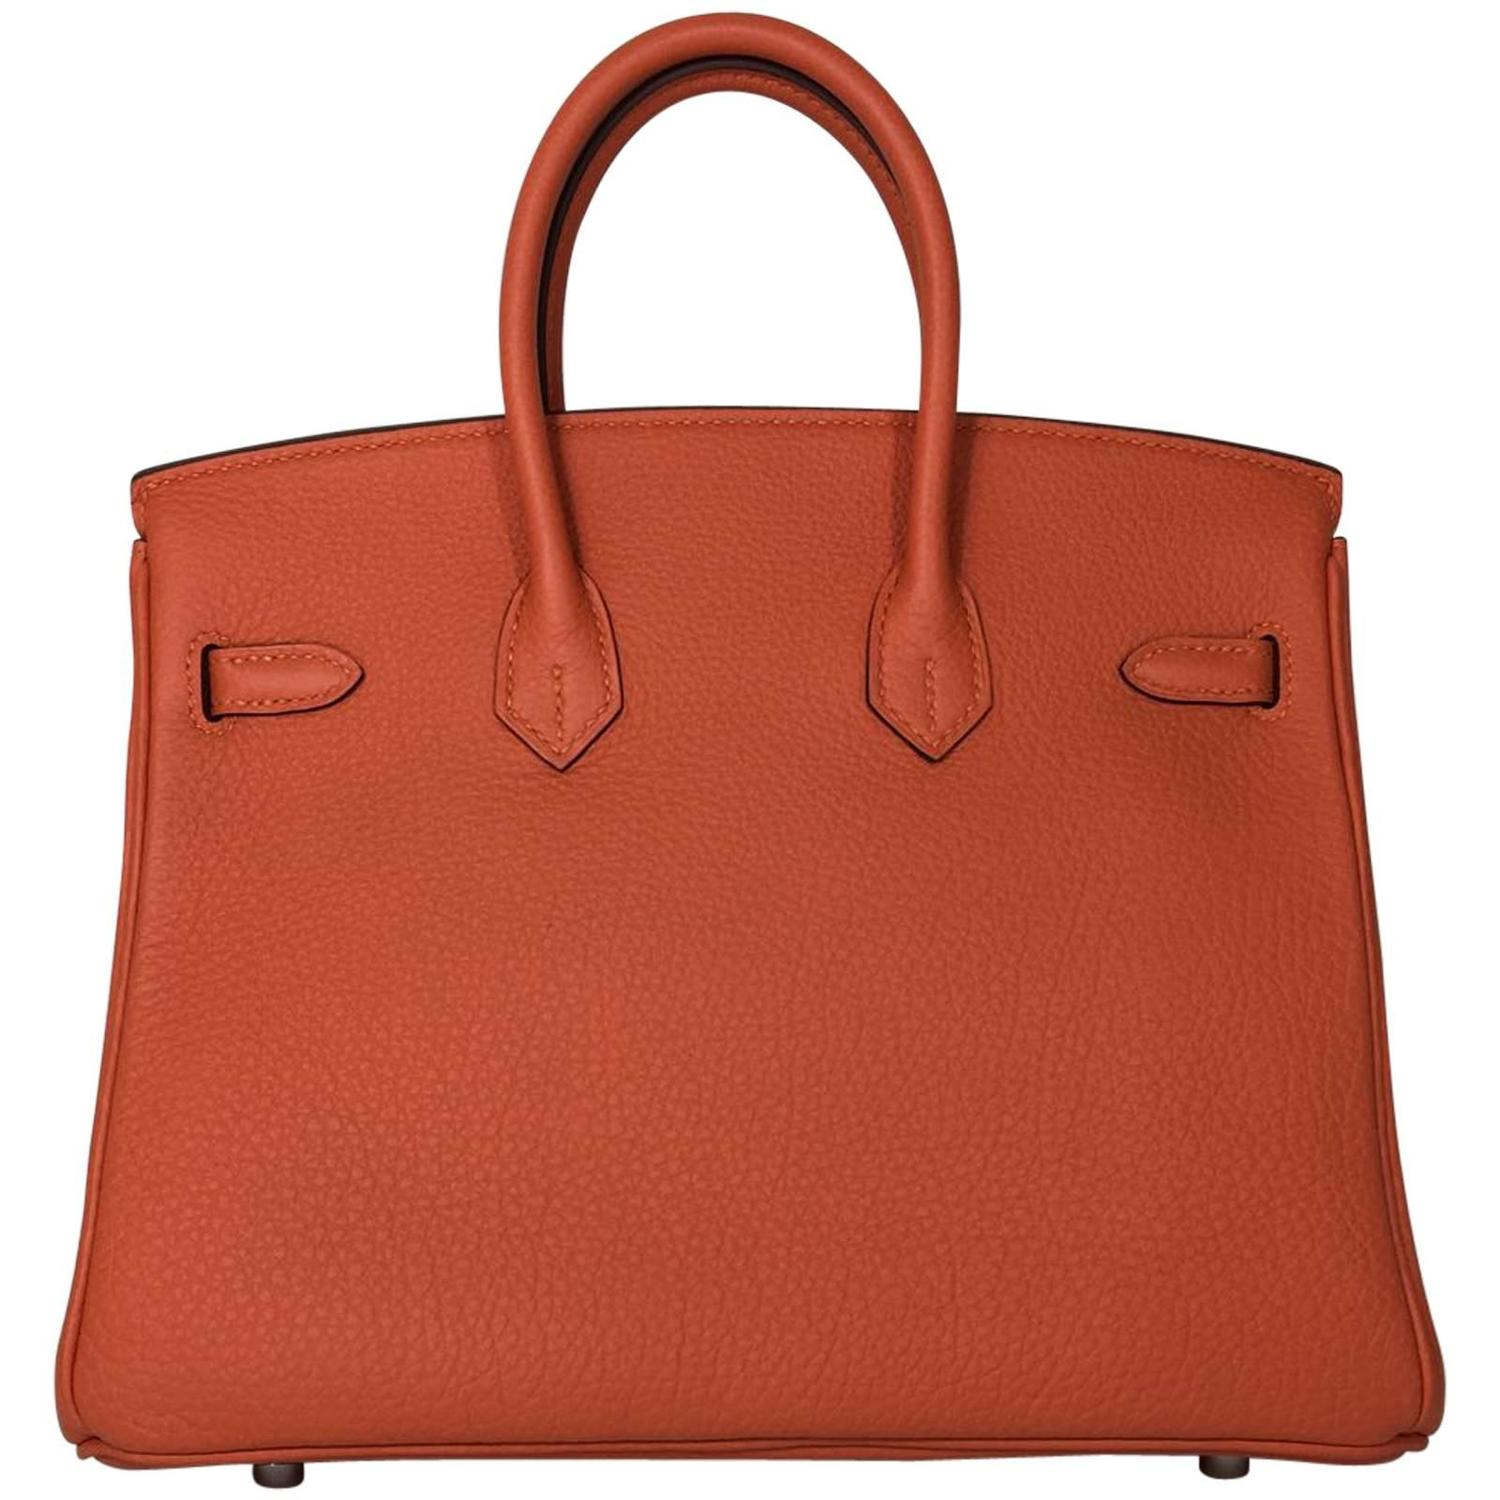 black hermes bag - Hermes Birkin 25 Fue Togo PHW For Sale at 1stdibs